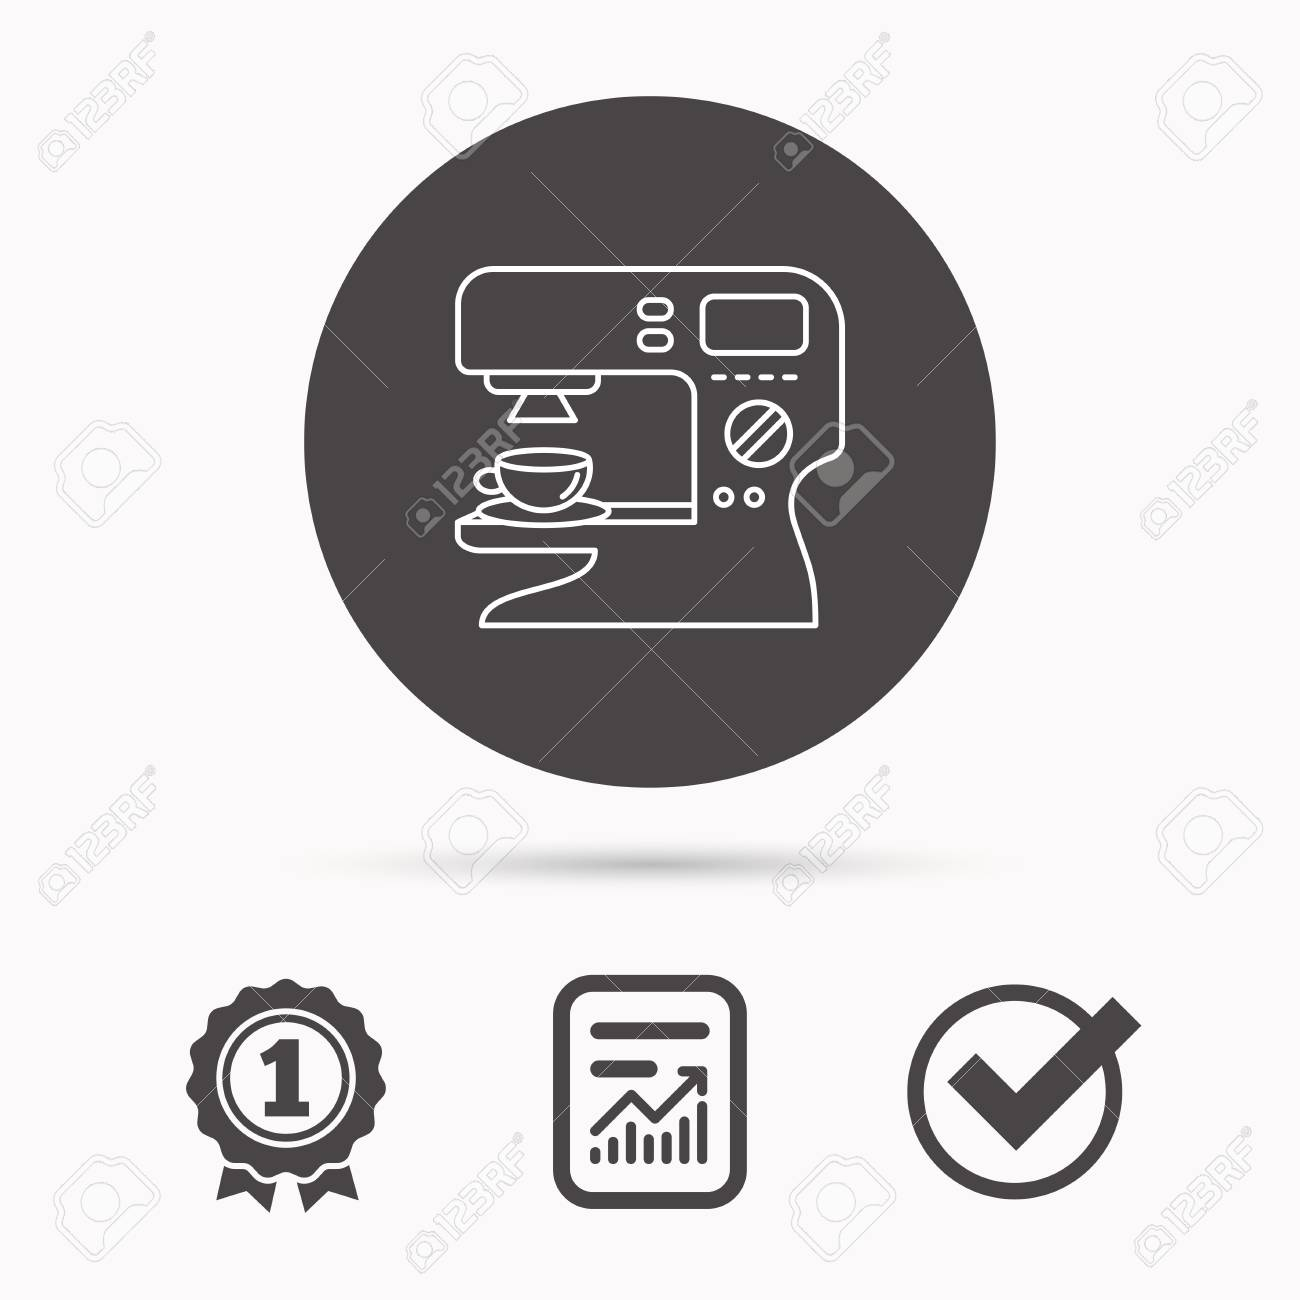 Coffee maker icon  Hot drink machine sign  Report document, winner